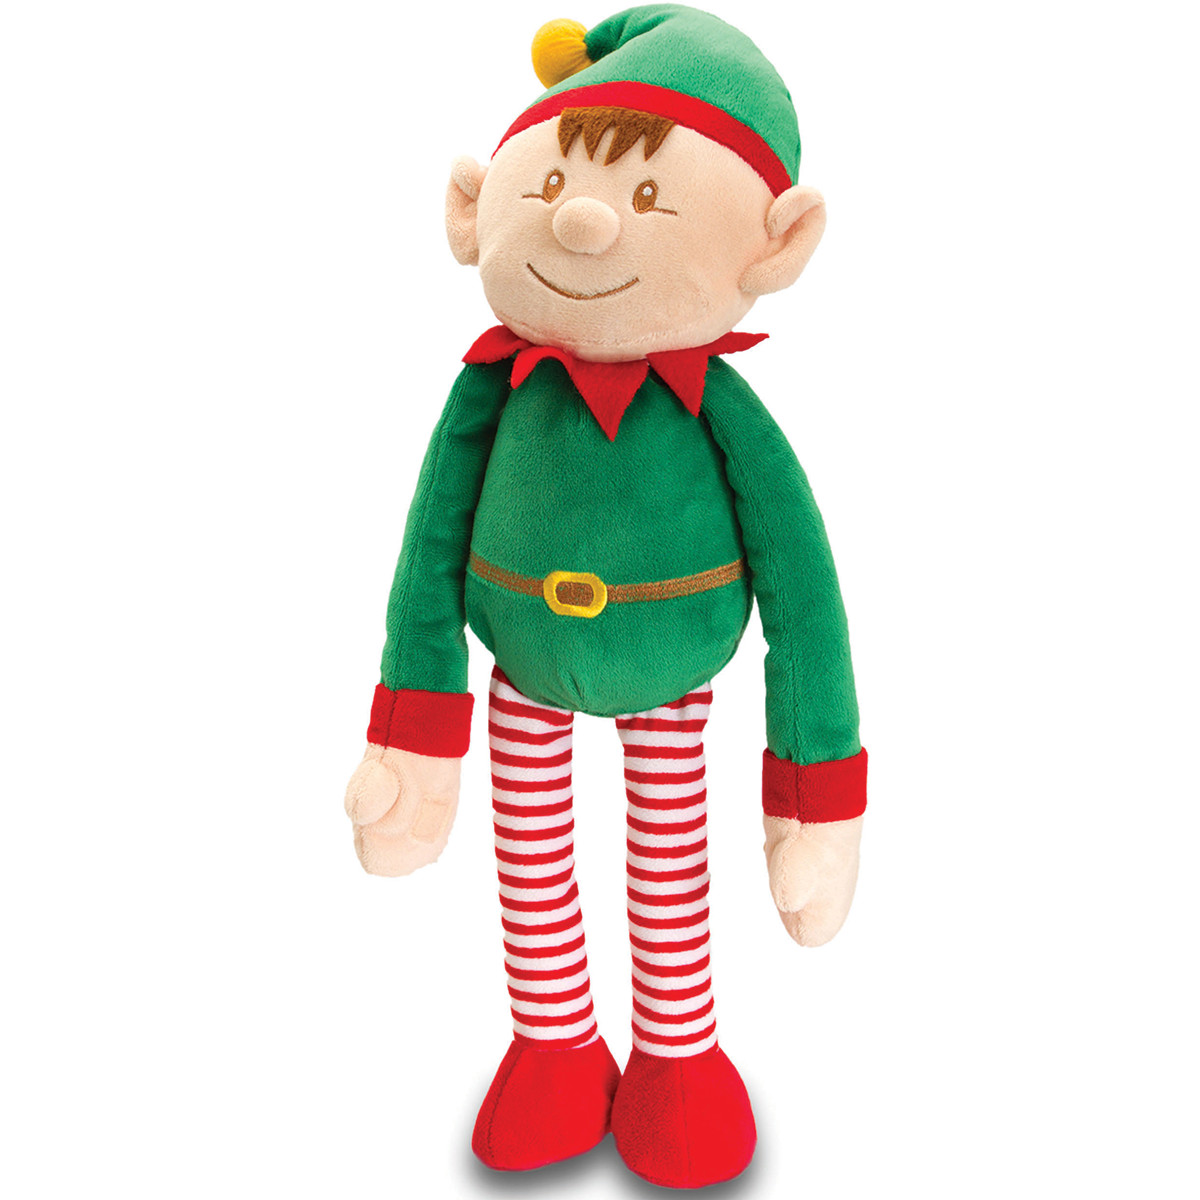 Medium Santa's Elf Soft Toy - Keel Toys Christmas